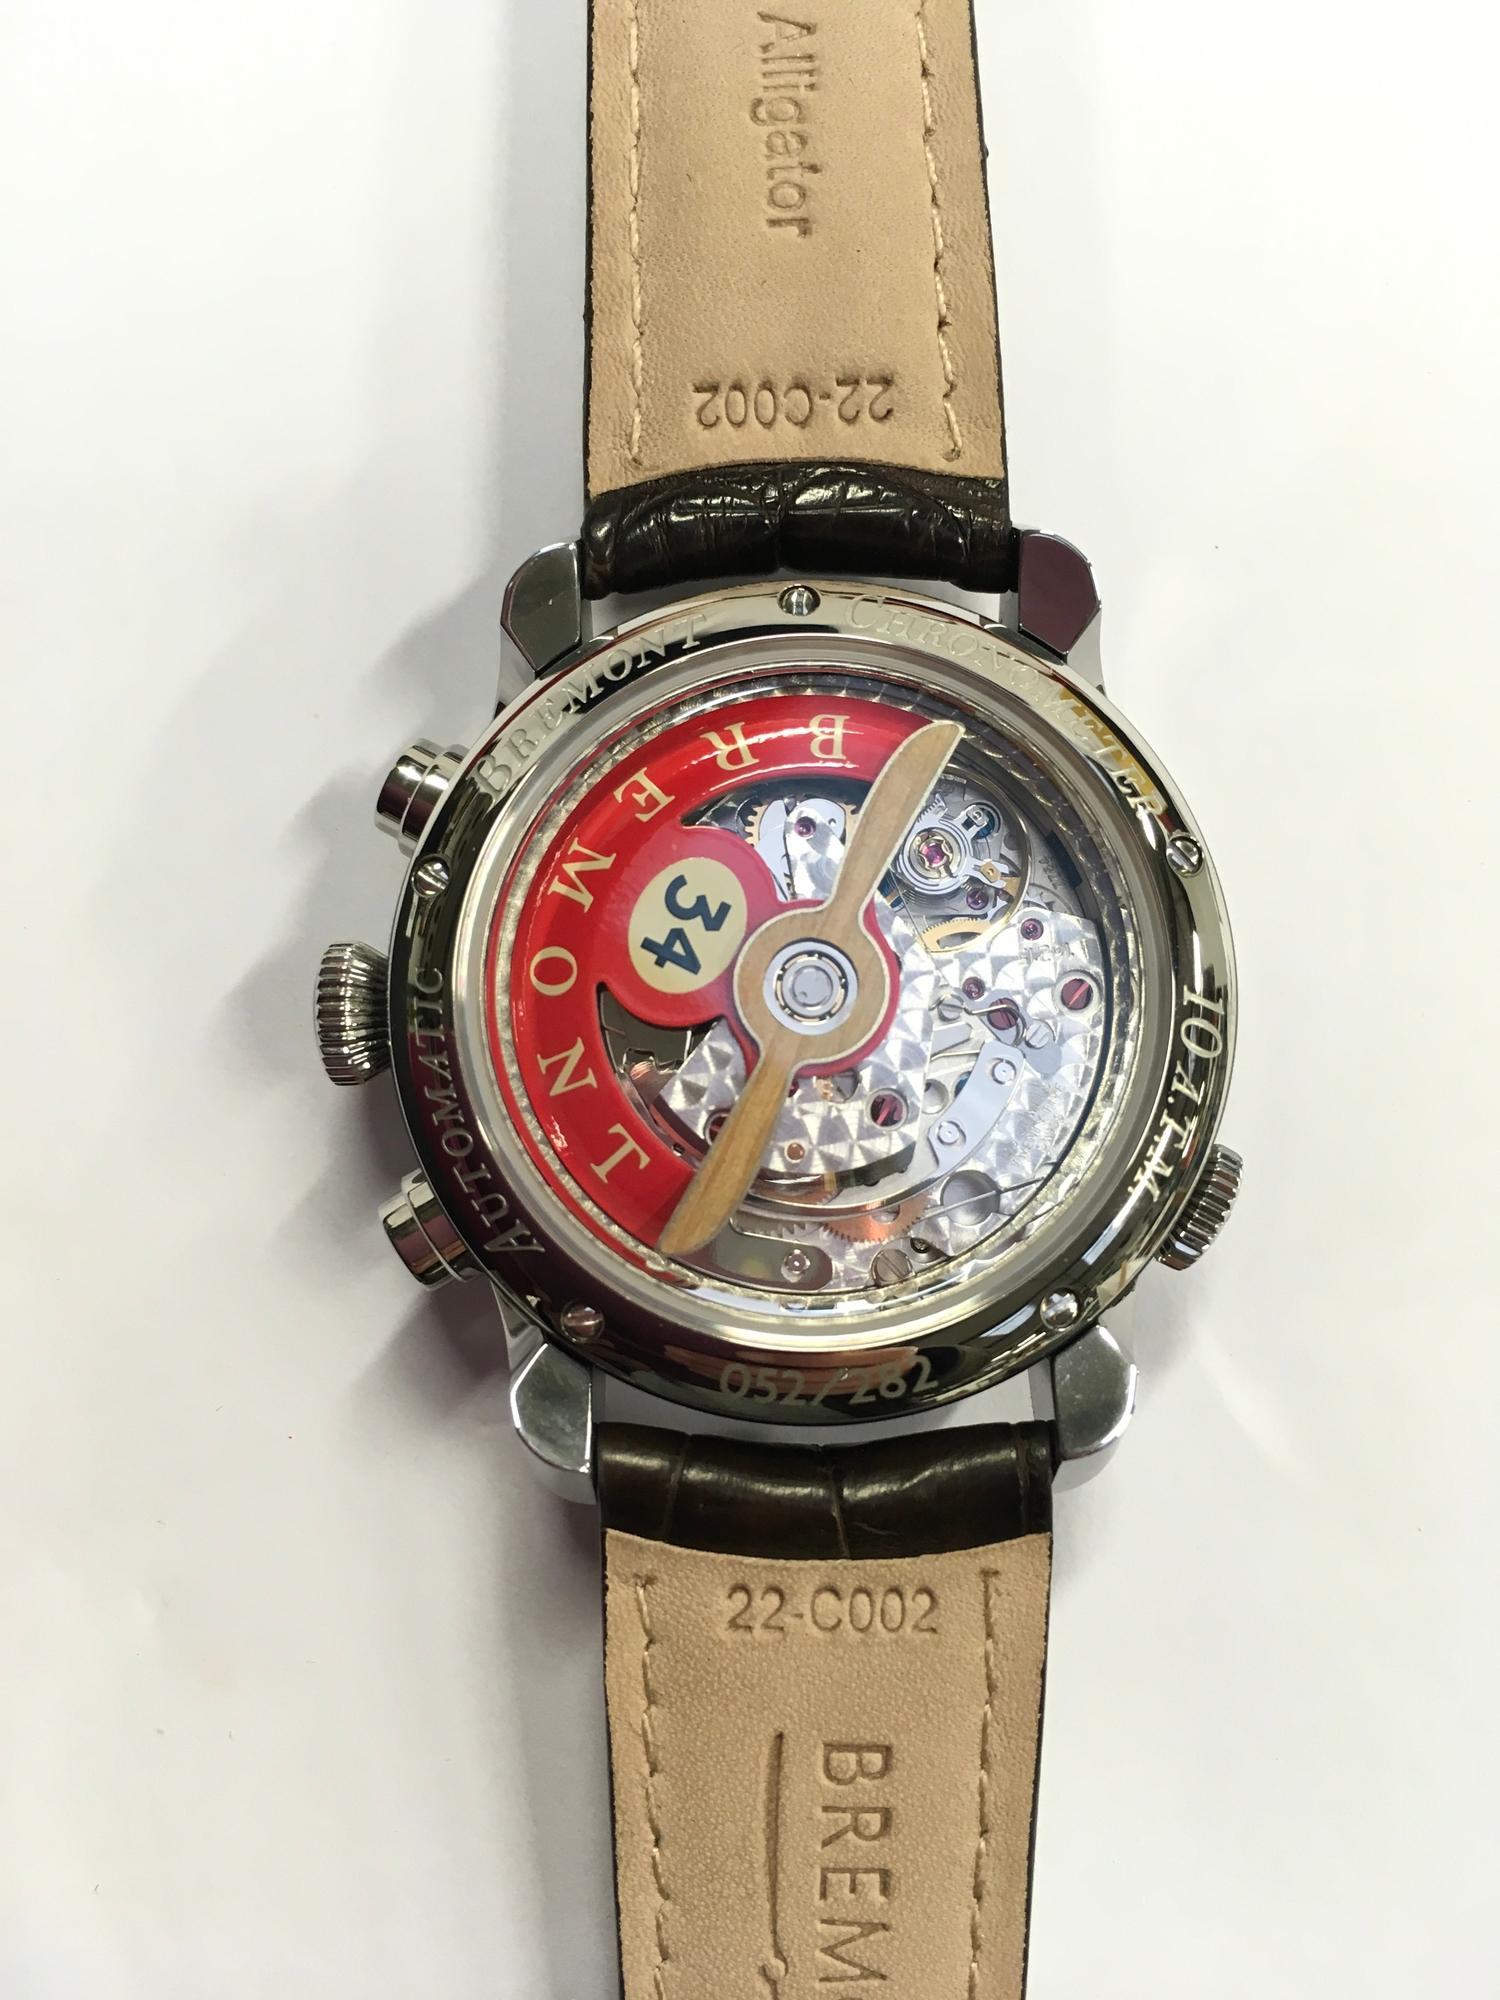 Bremont Stainless Steel gents watch, DH-88 Comet Limited Edition. - Image 6 of 11